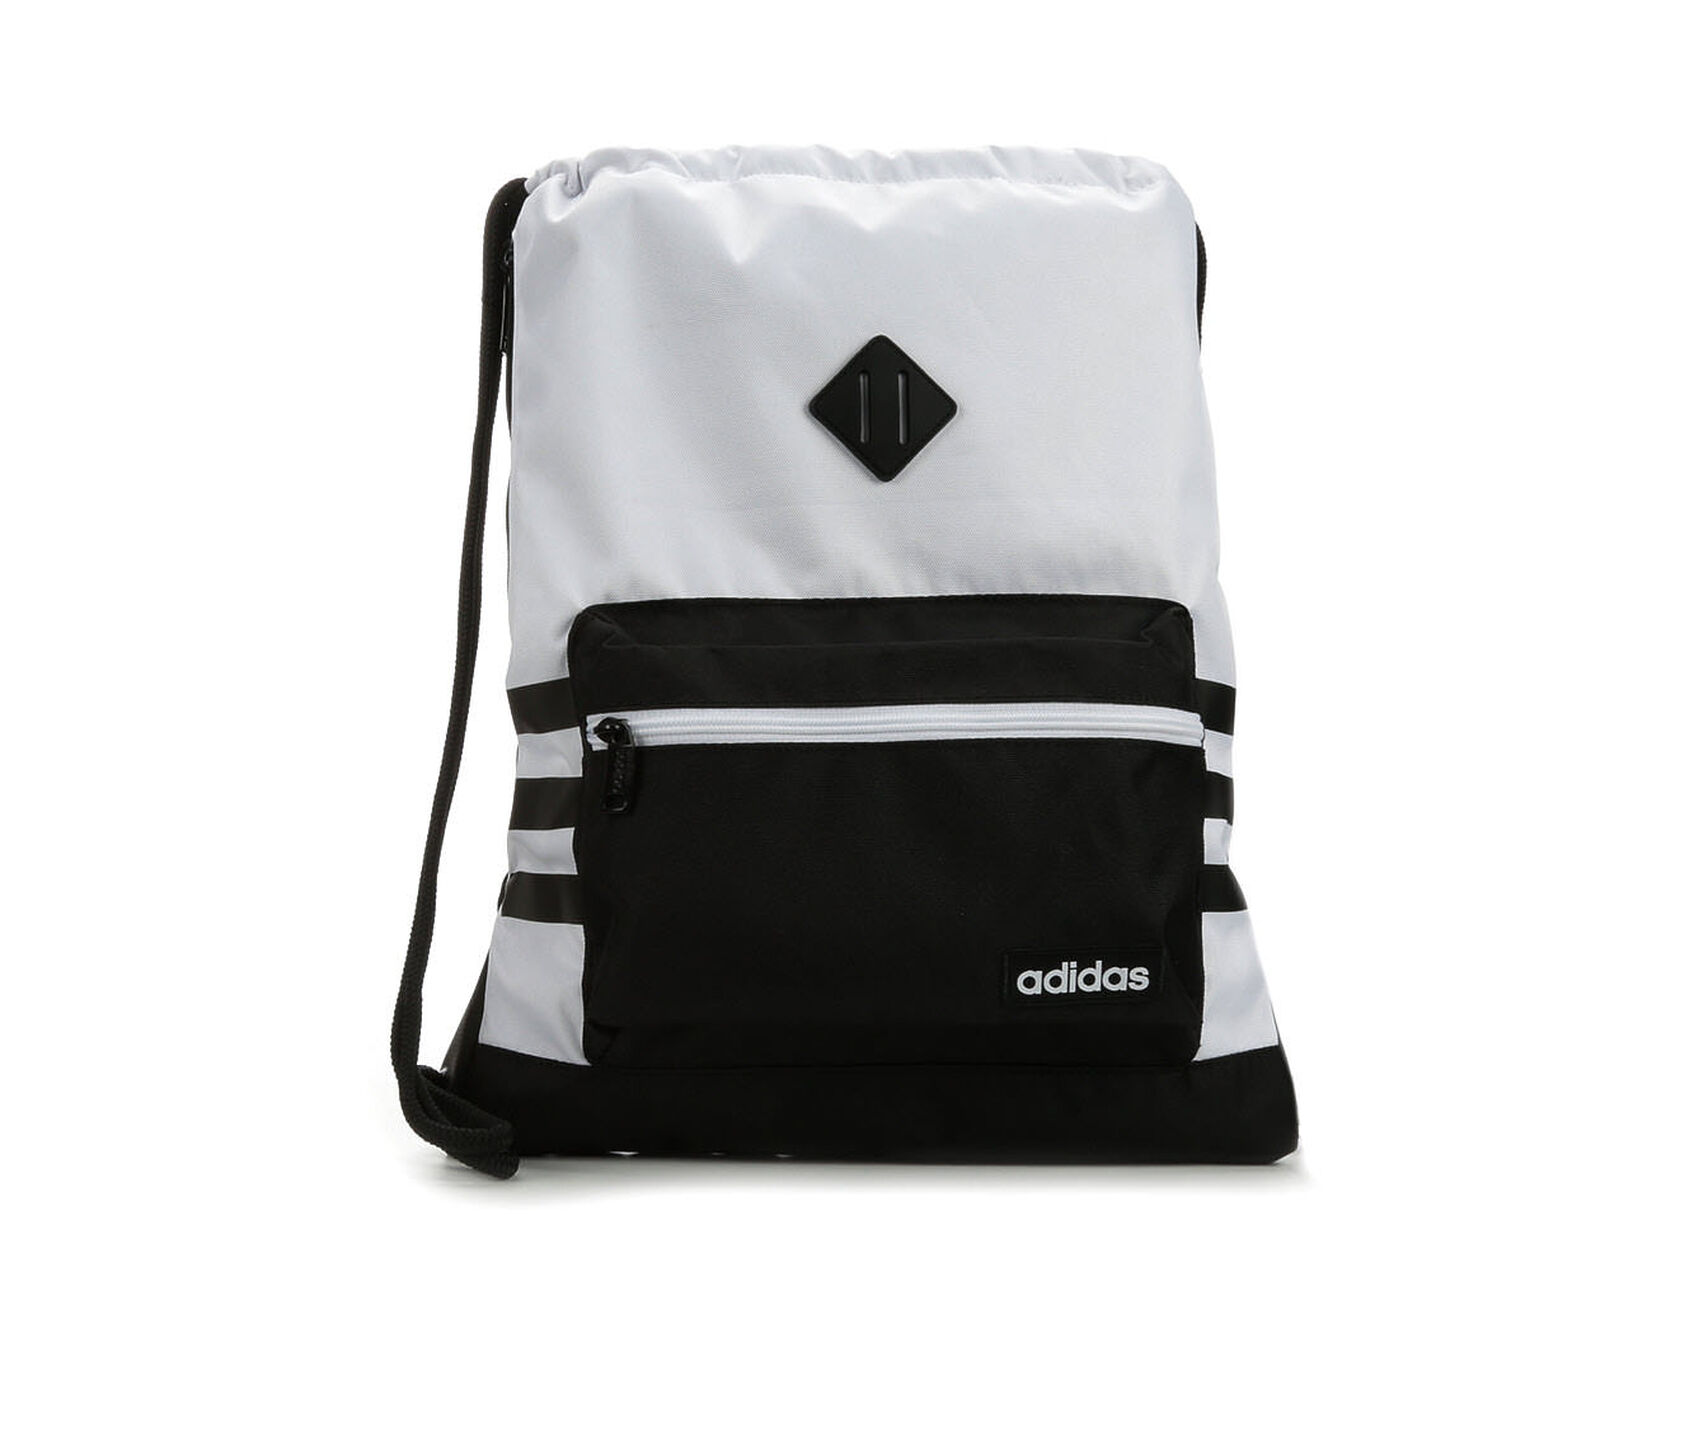 460fad3595d2 Adidas Classic 3S Sackpack. Previous